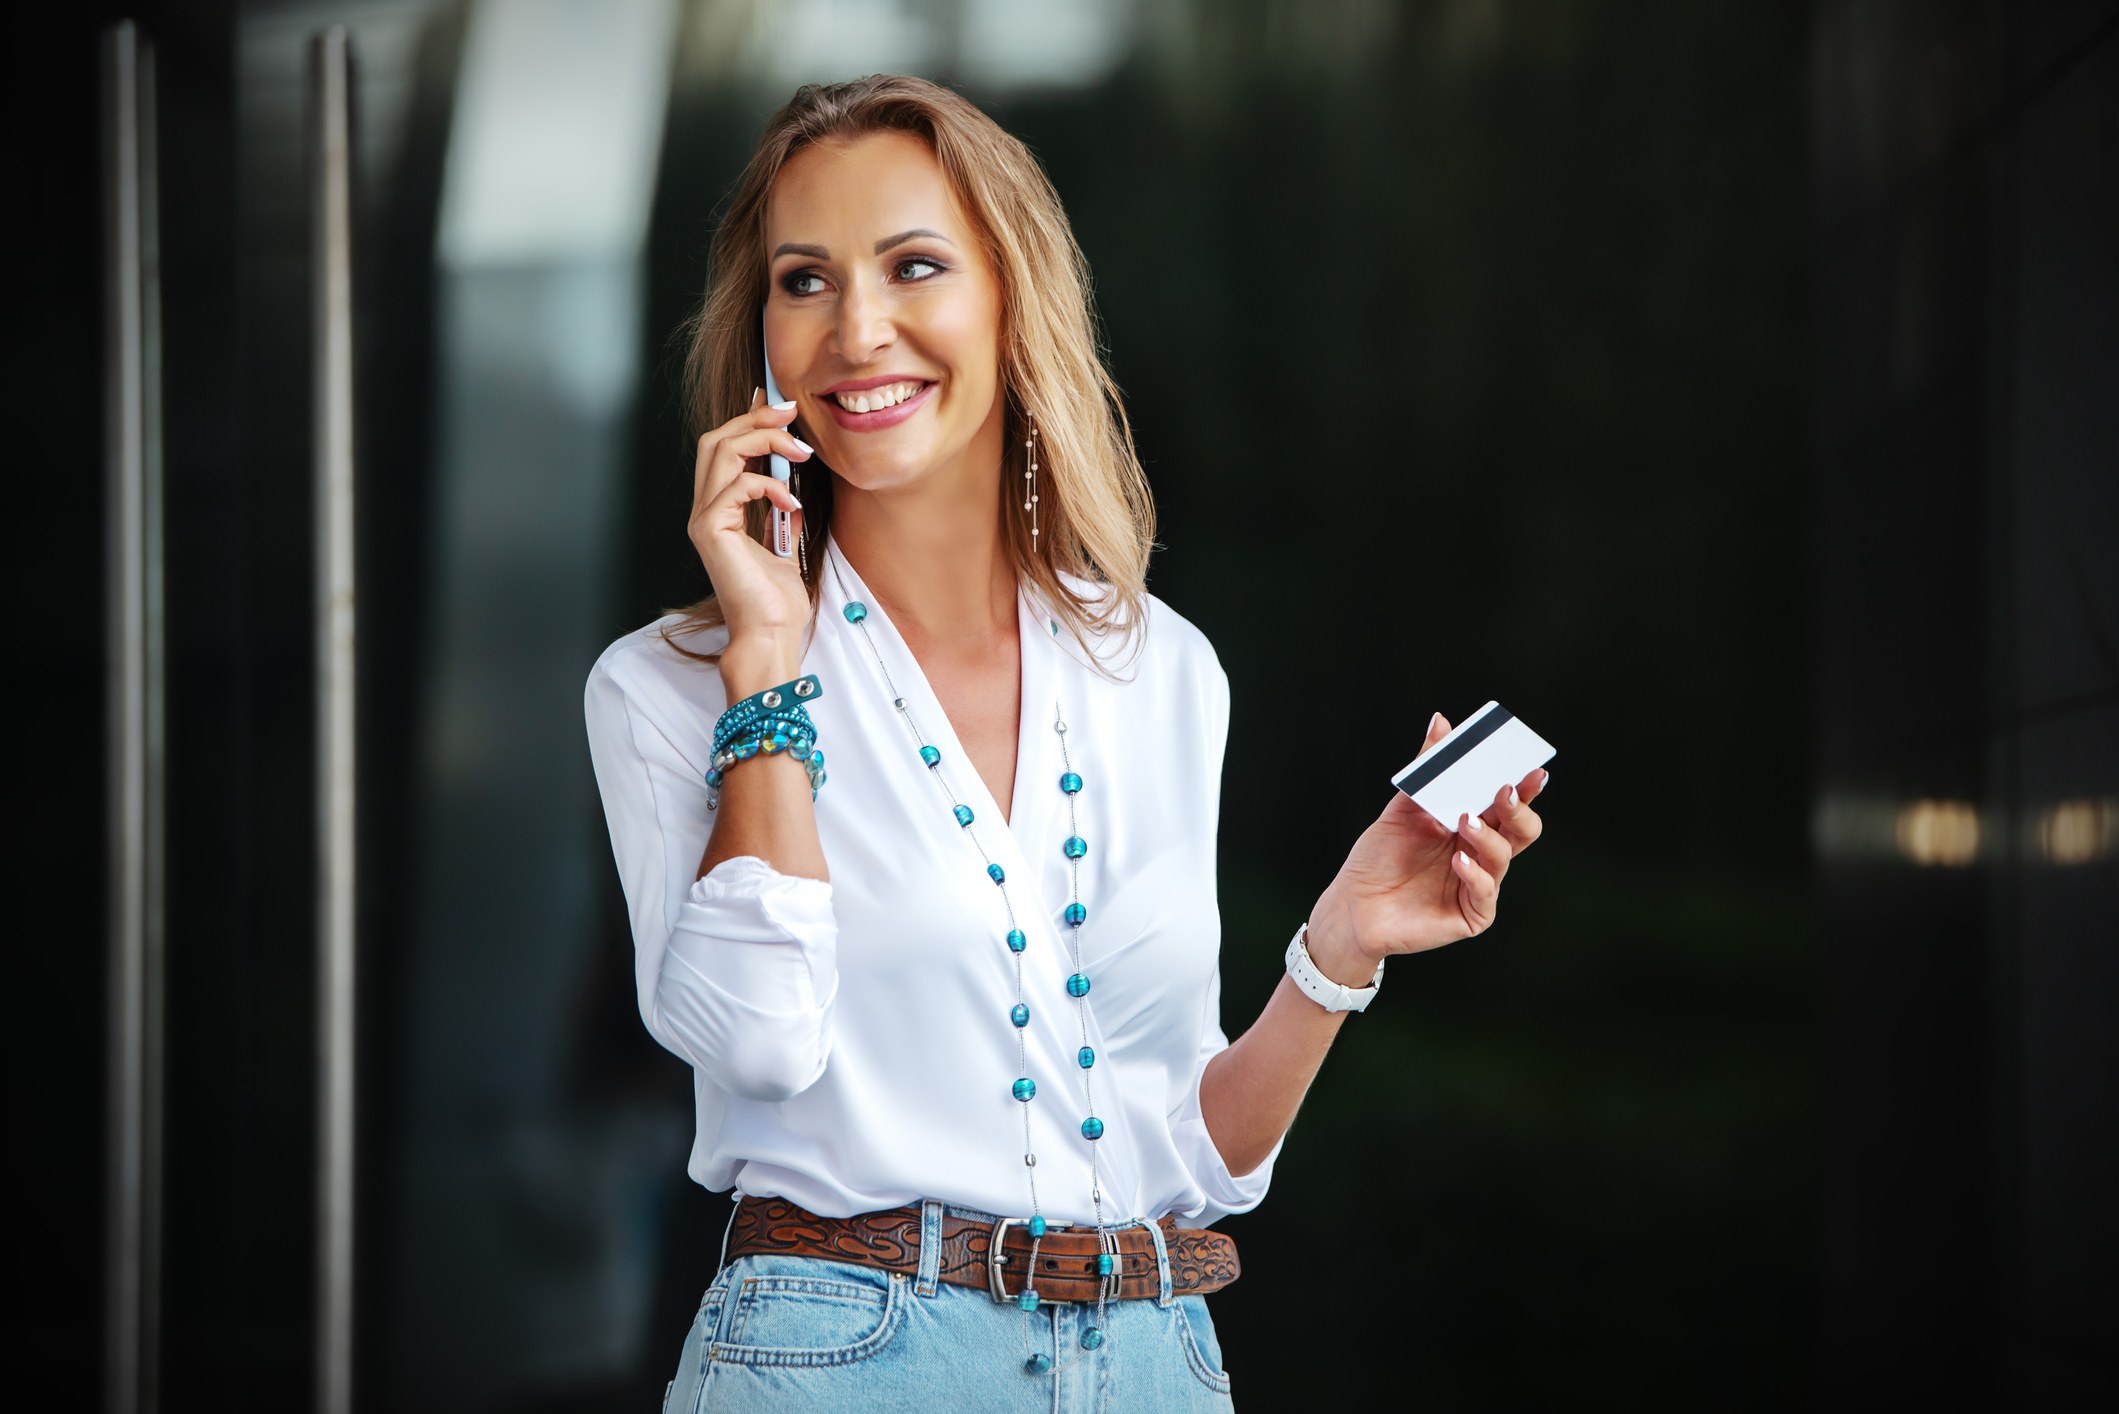 Very happy woman smiling. A stylishly dressed girl stands with a phone in her hand and waves a credit card.